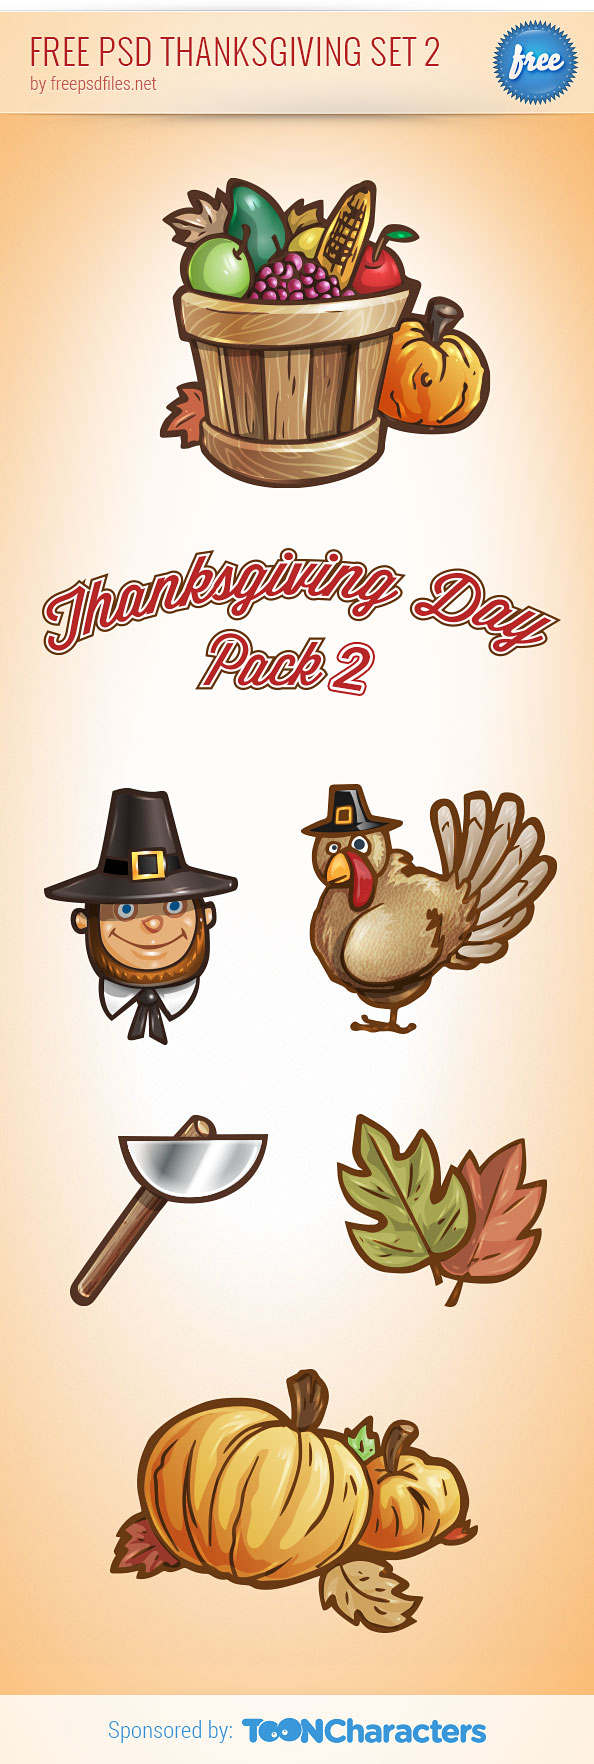 Free PSD Thanksgiving Set